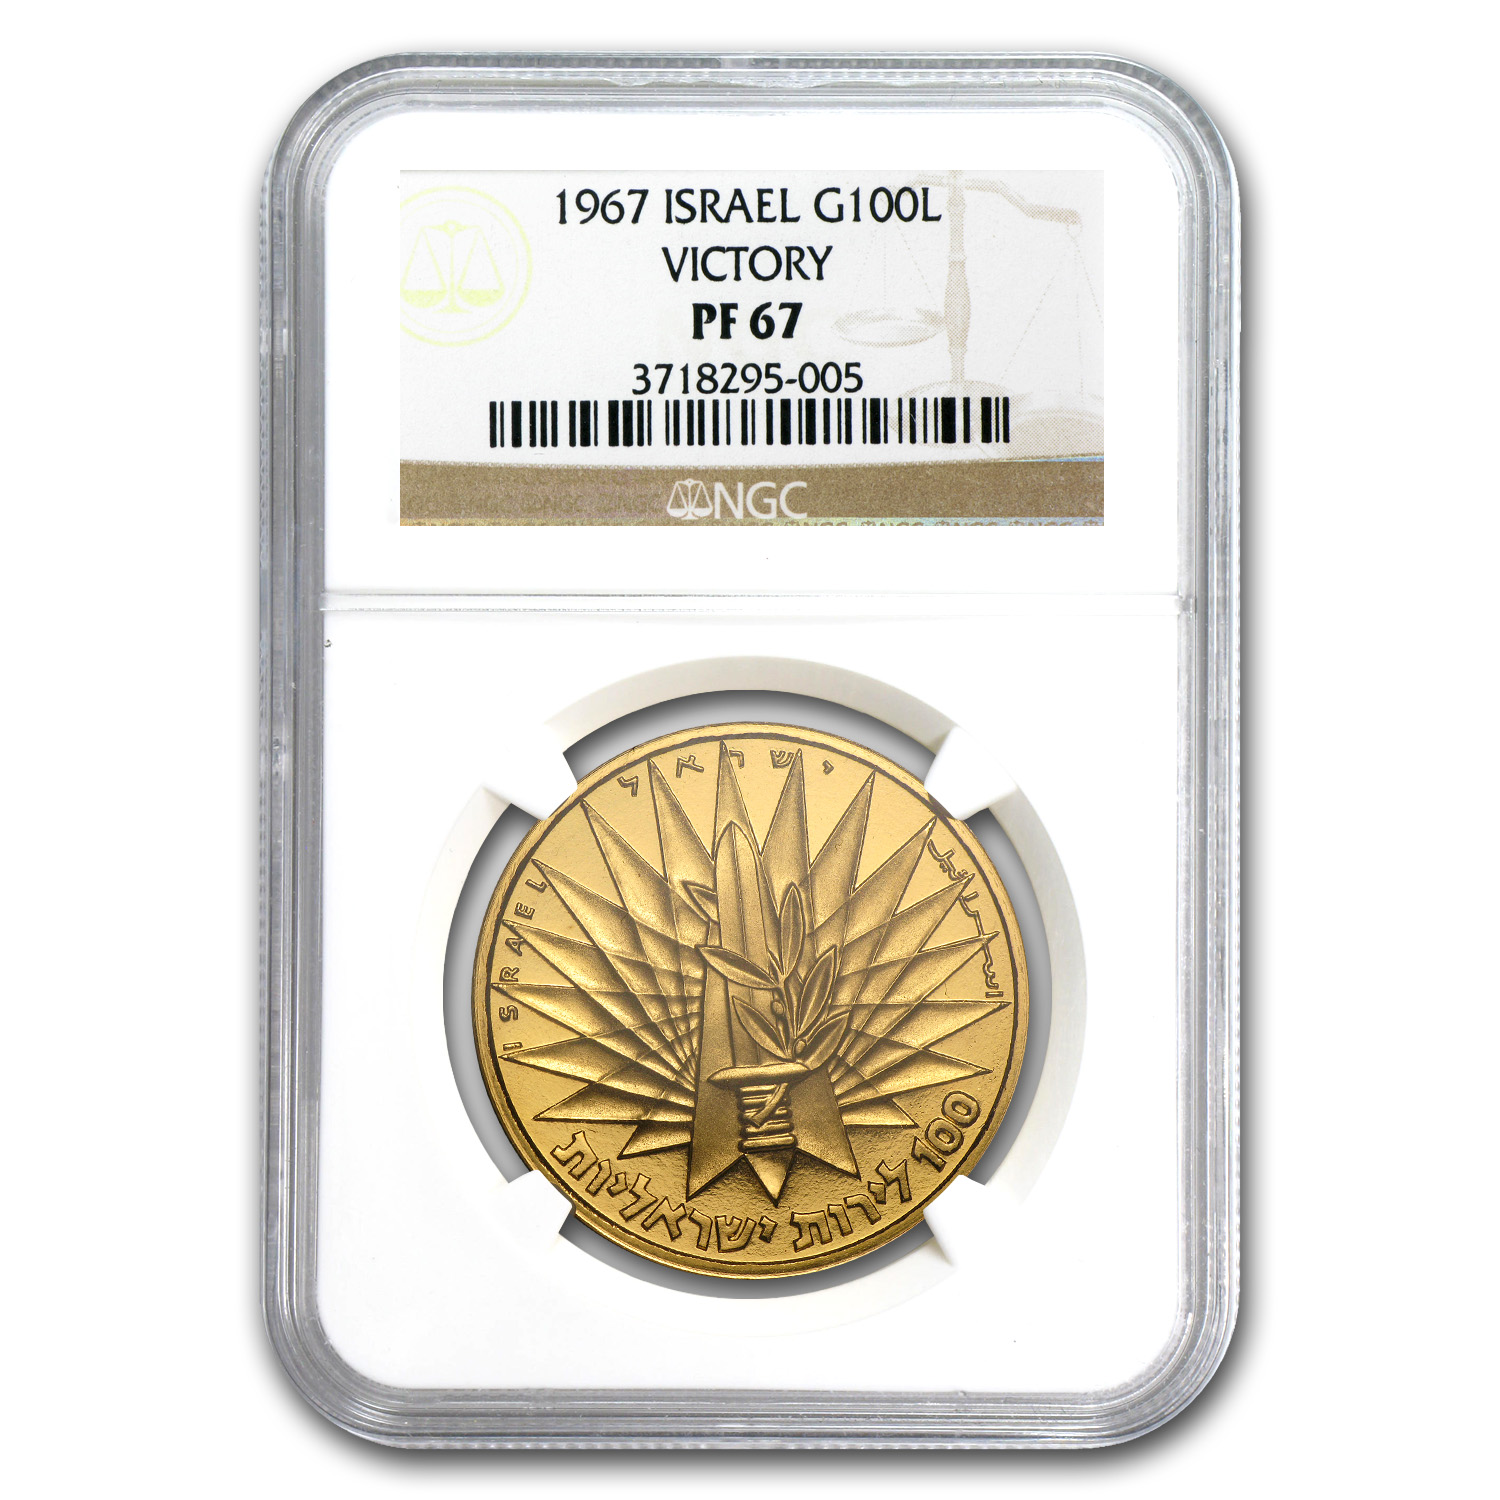 1967 Israel Victory Proof Gold 100 Lirot Coin NGC PF-67